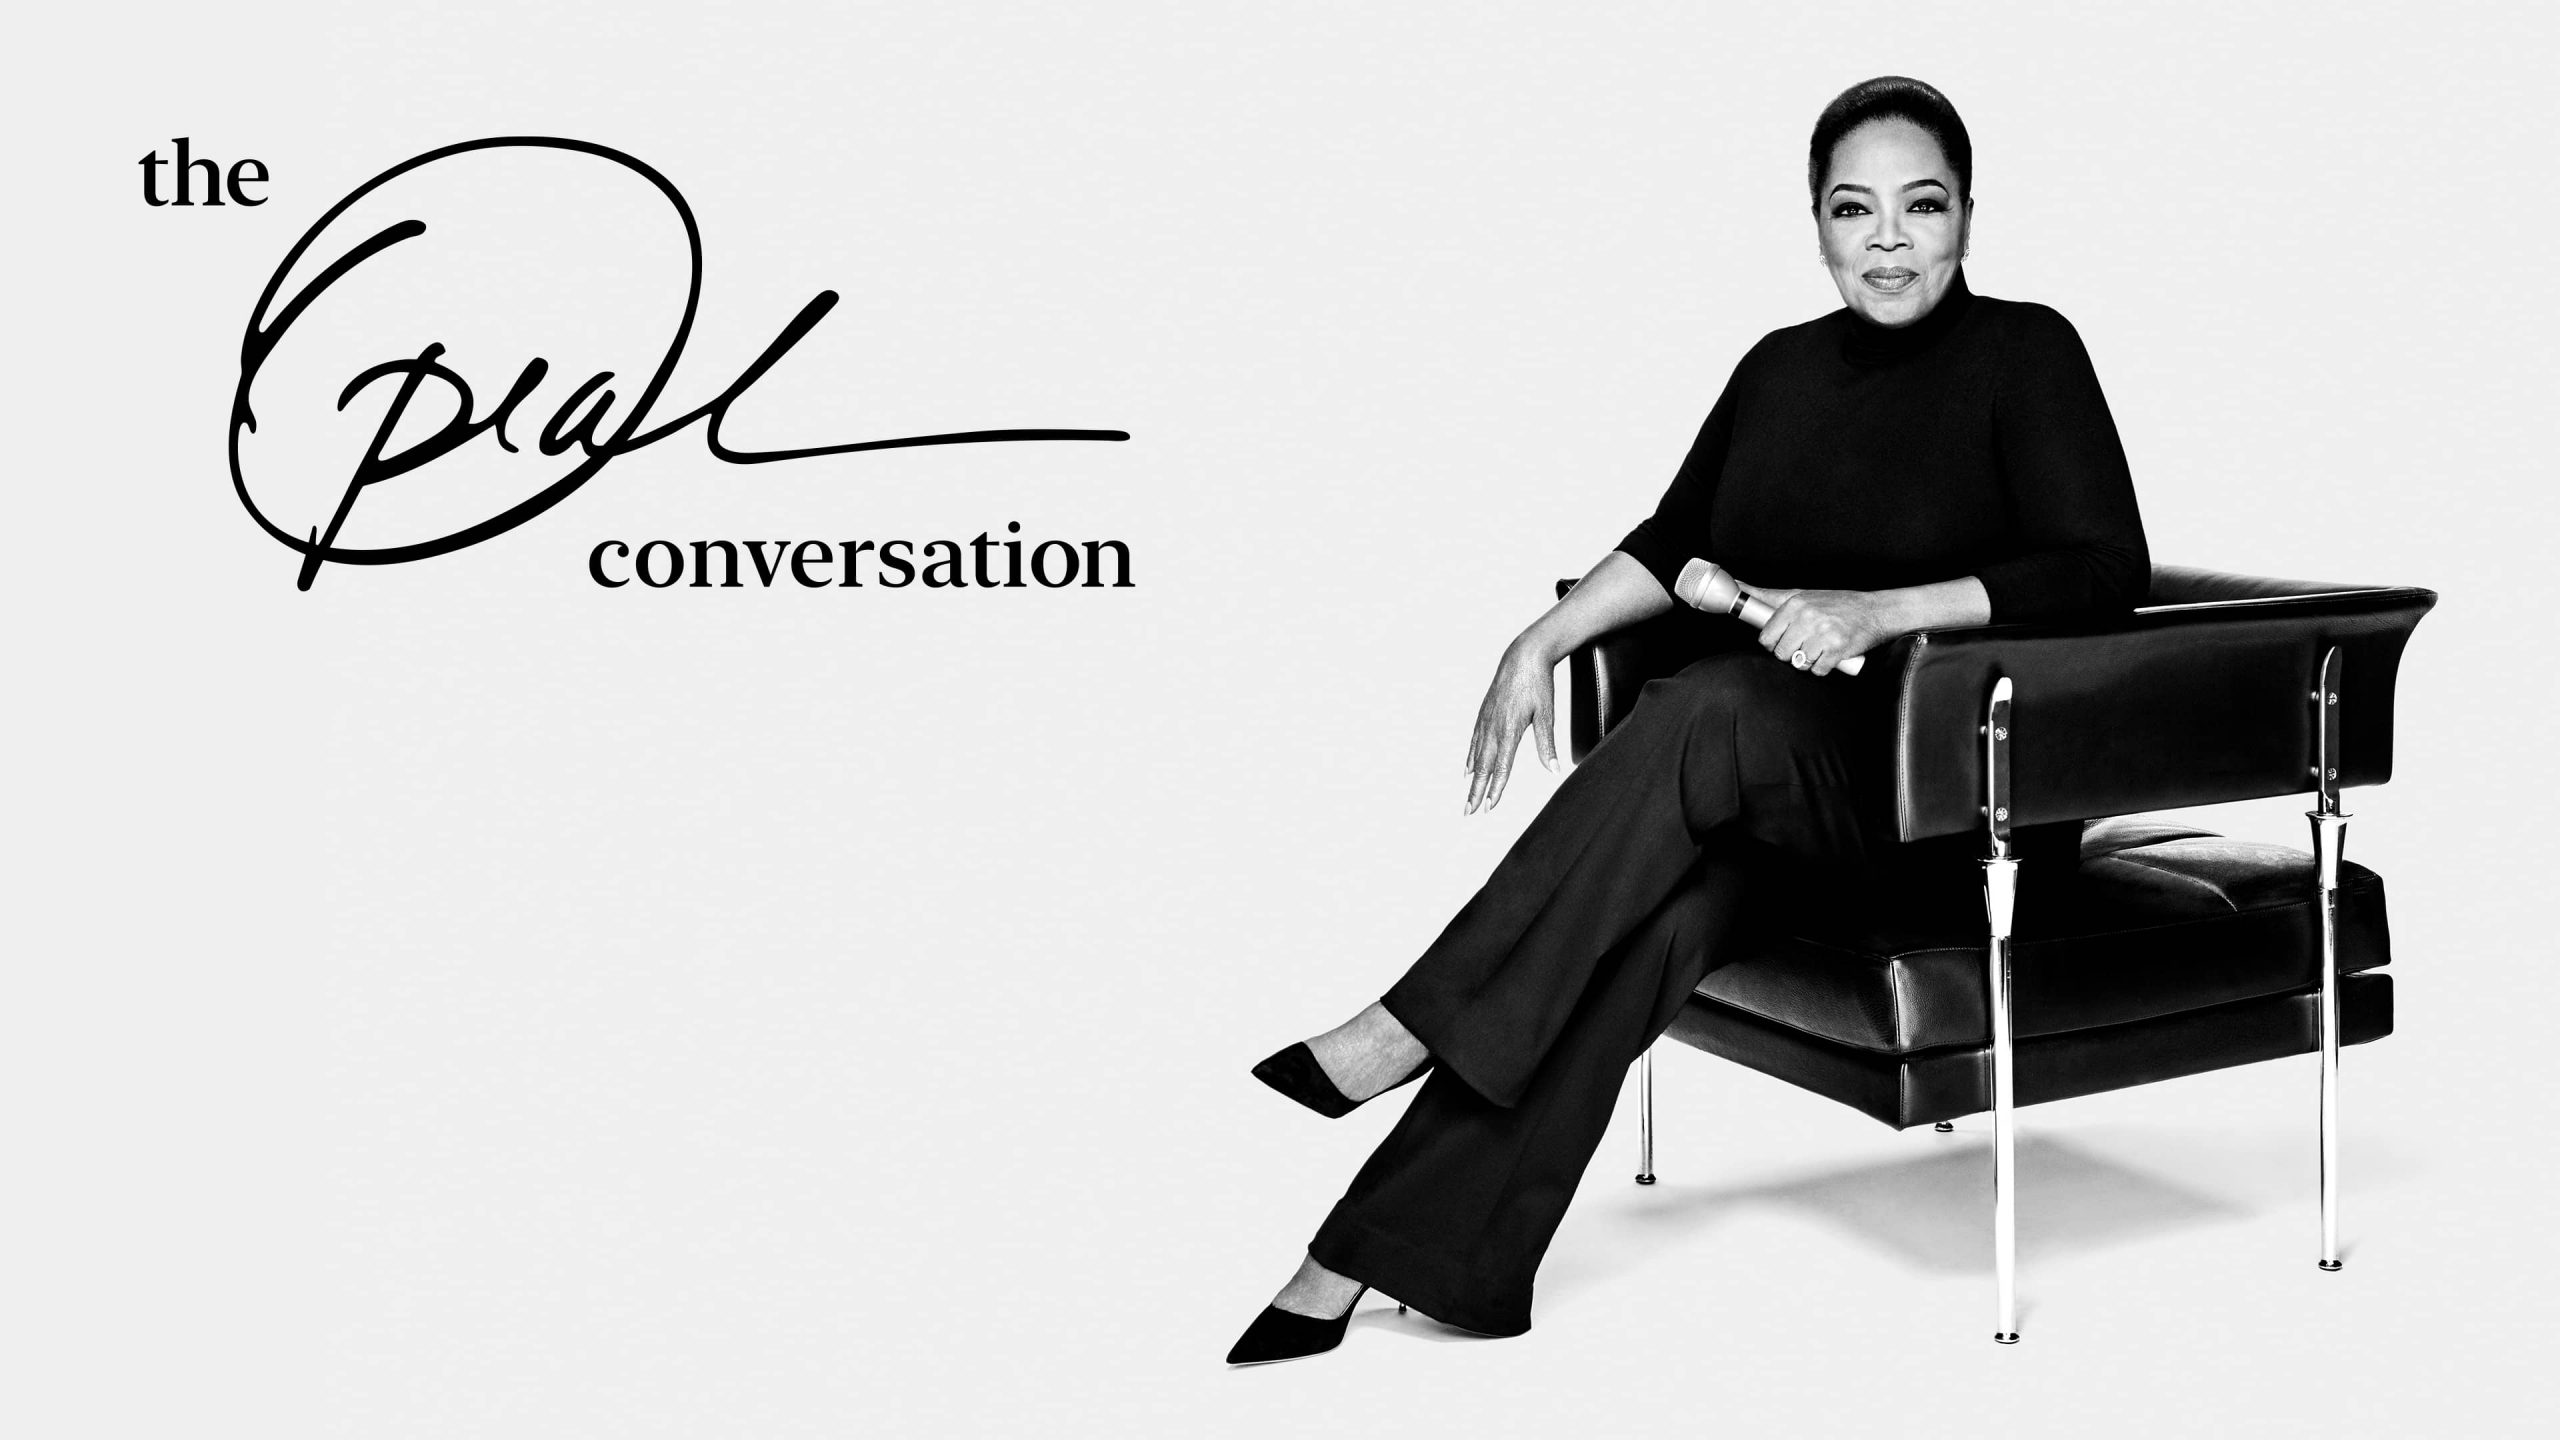 072720 Apple TV The Oprah Conversation Inline Image 01 scaled